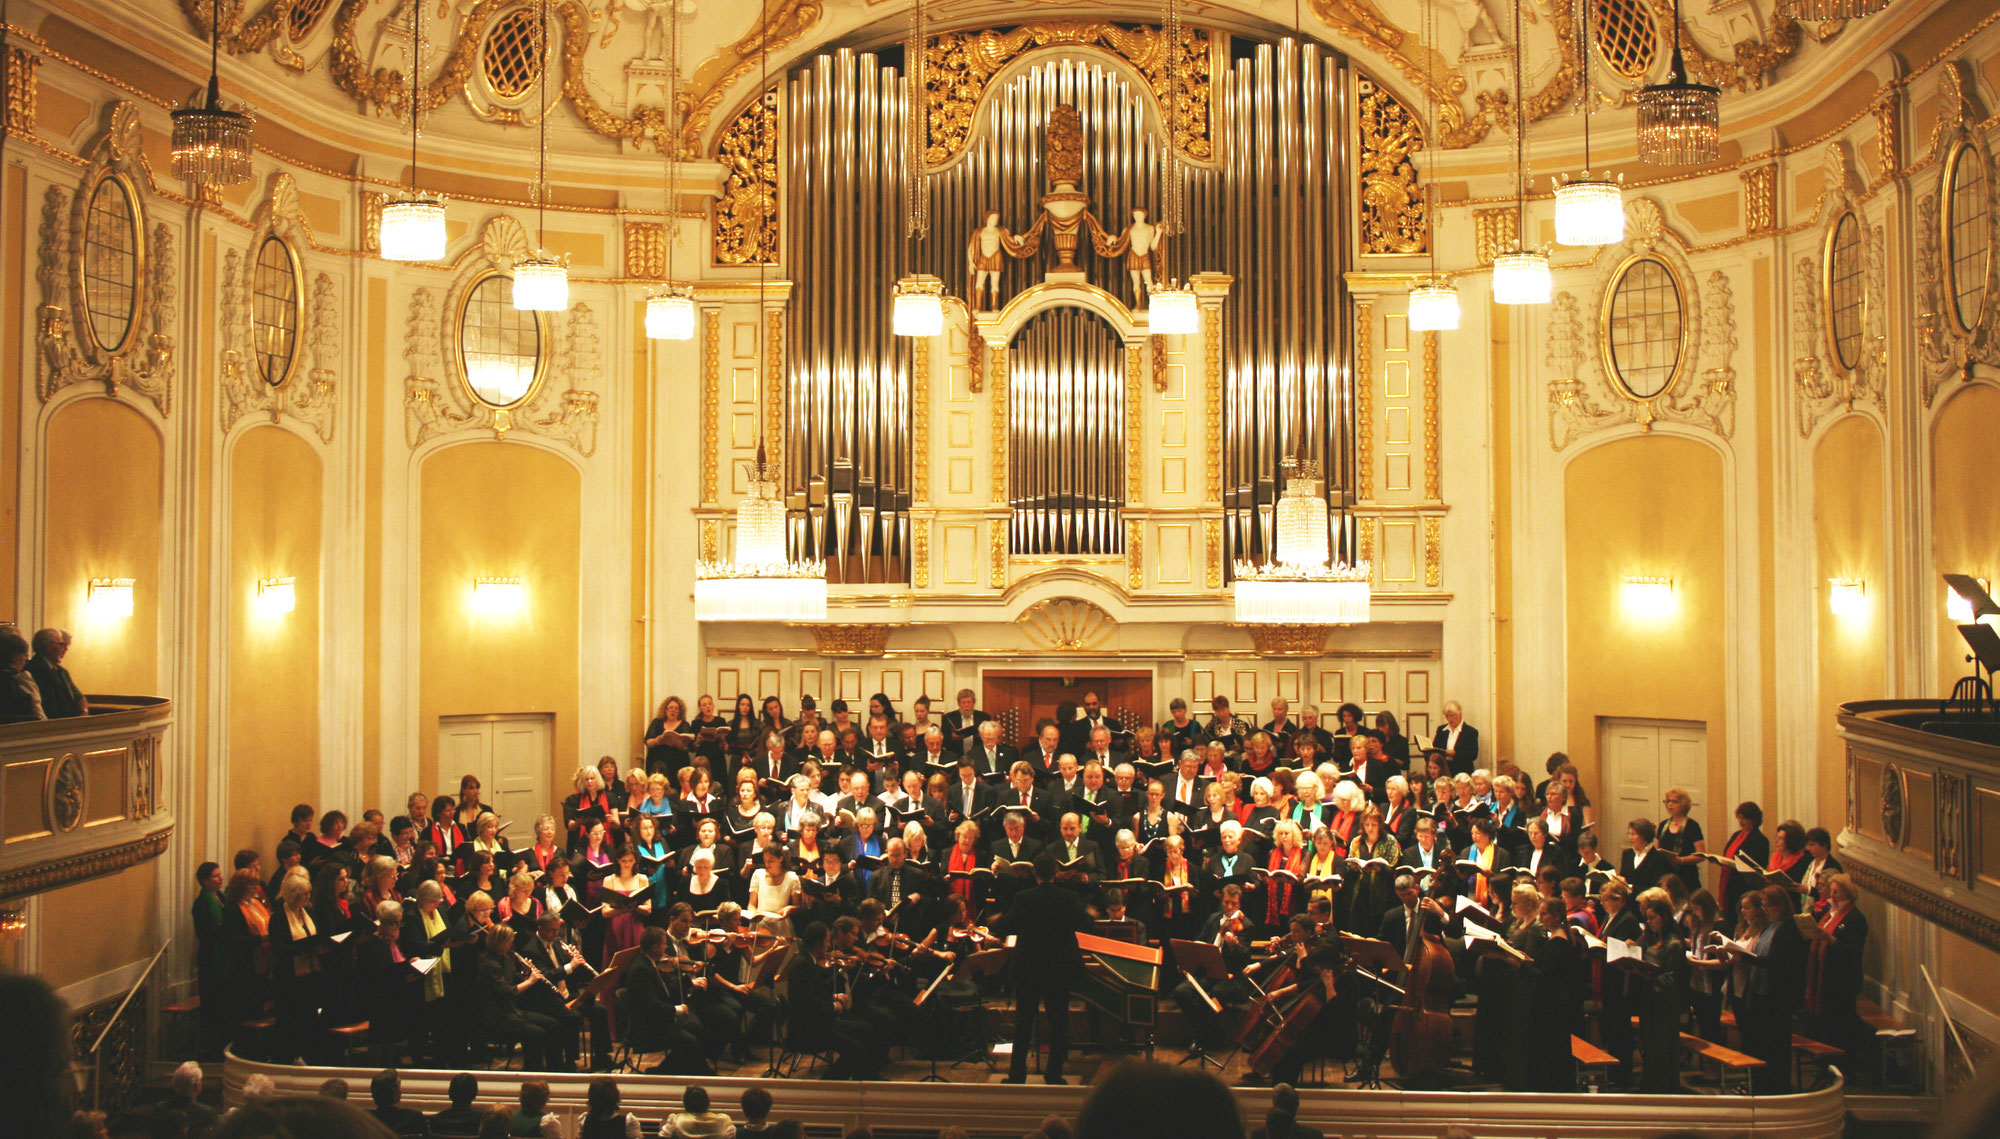 Festival program 2020 - Messiah Choir Festival Salzburg